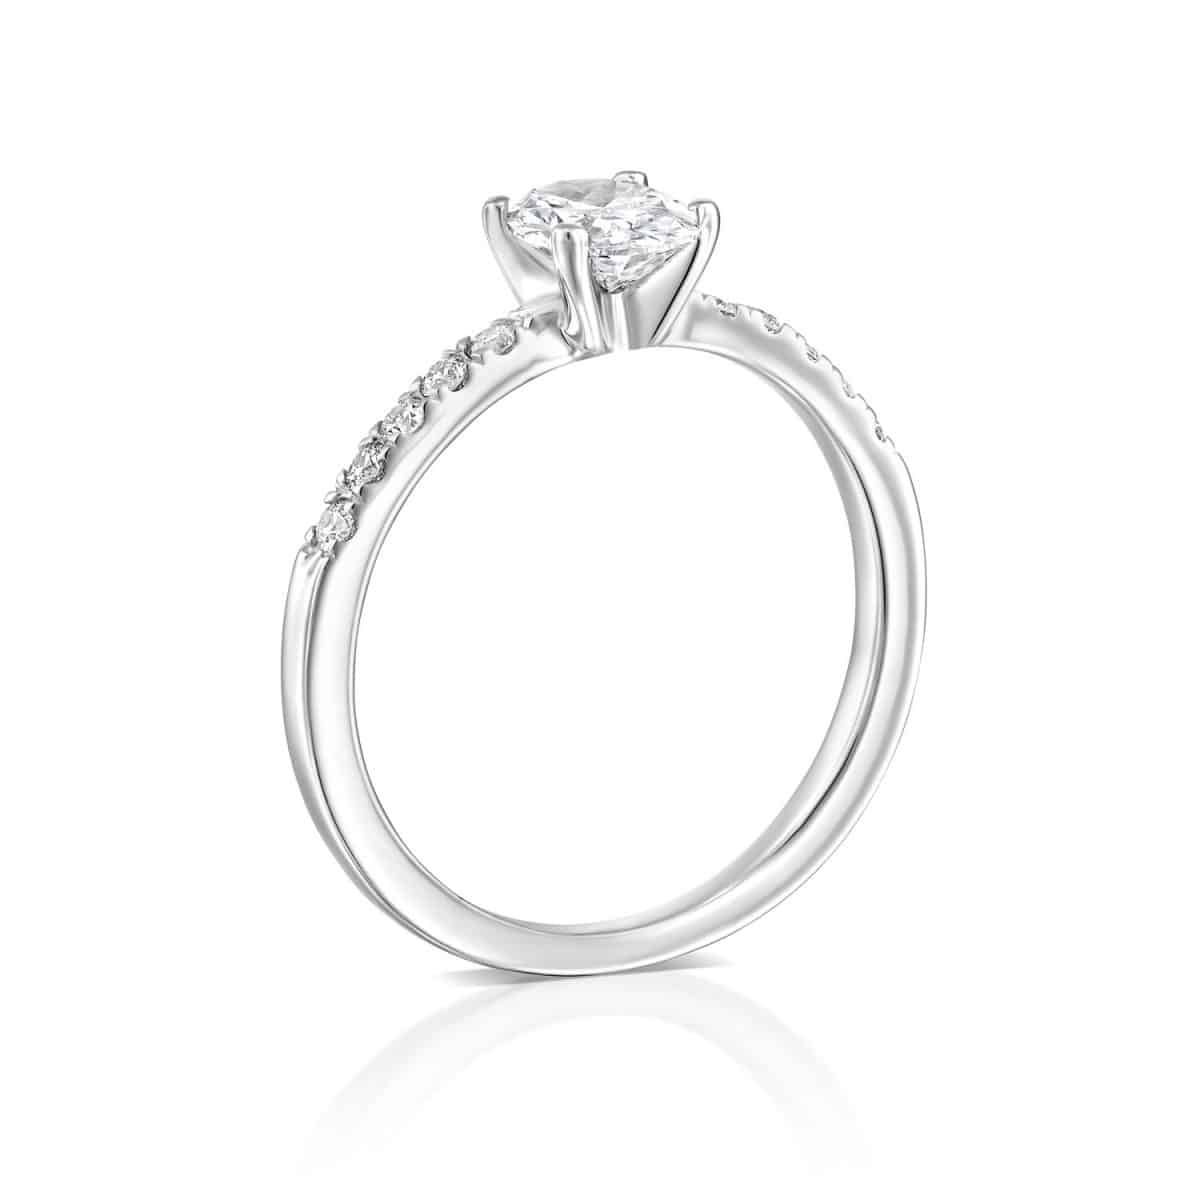 Oval - White Gold Lab Grown Diamond Engagement Ring 0.61ct. - standing